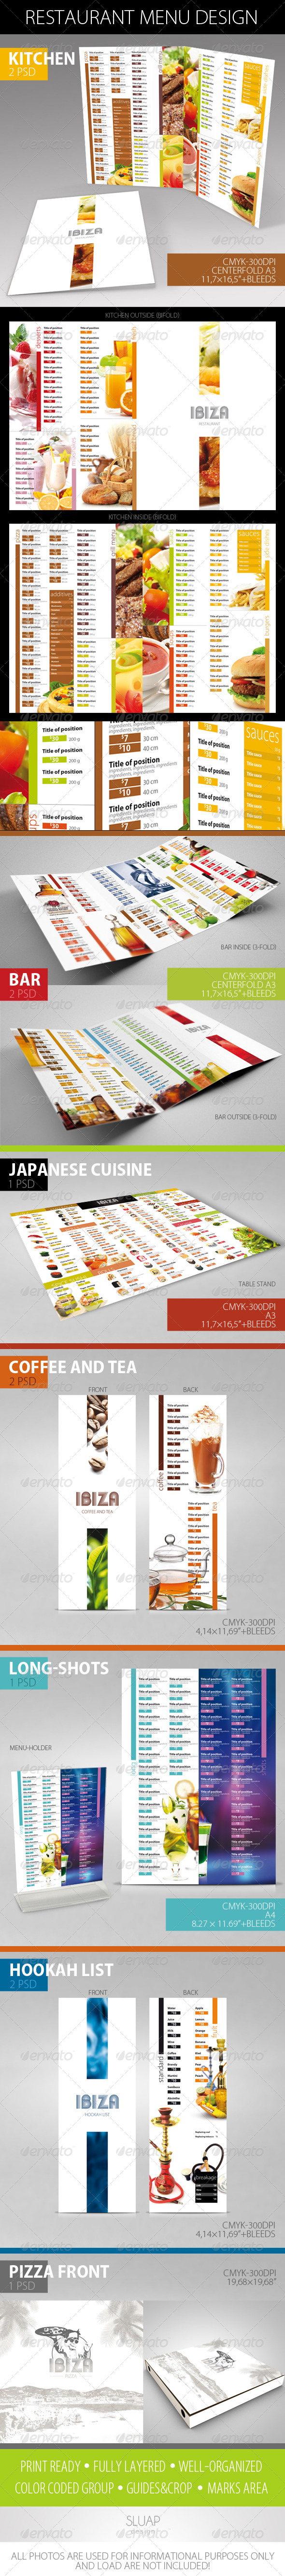 GraphicRiver Restaurant Menu Design 5079464